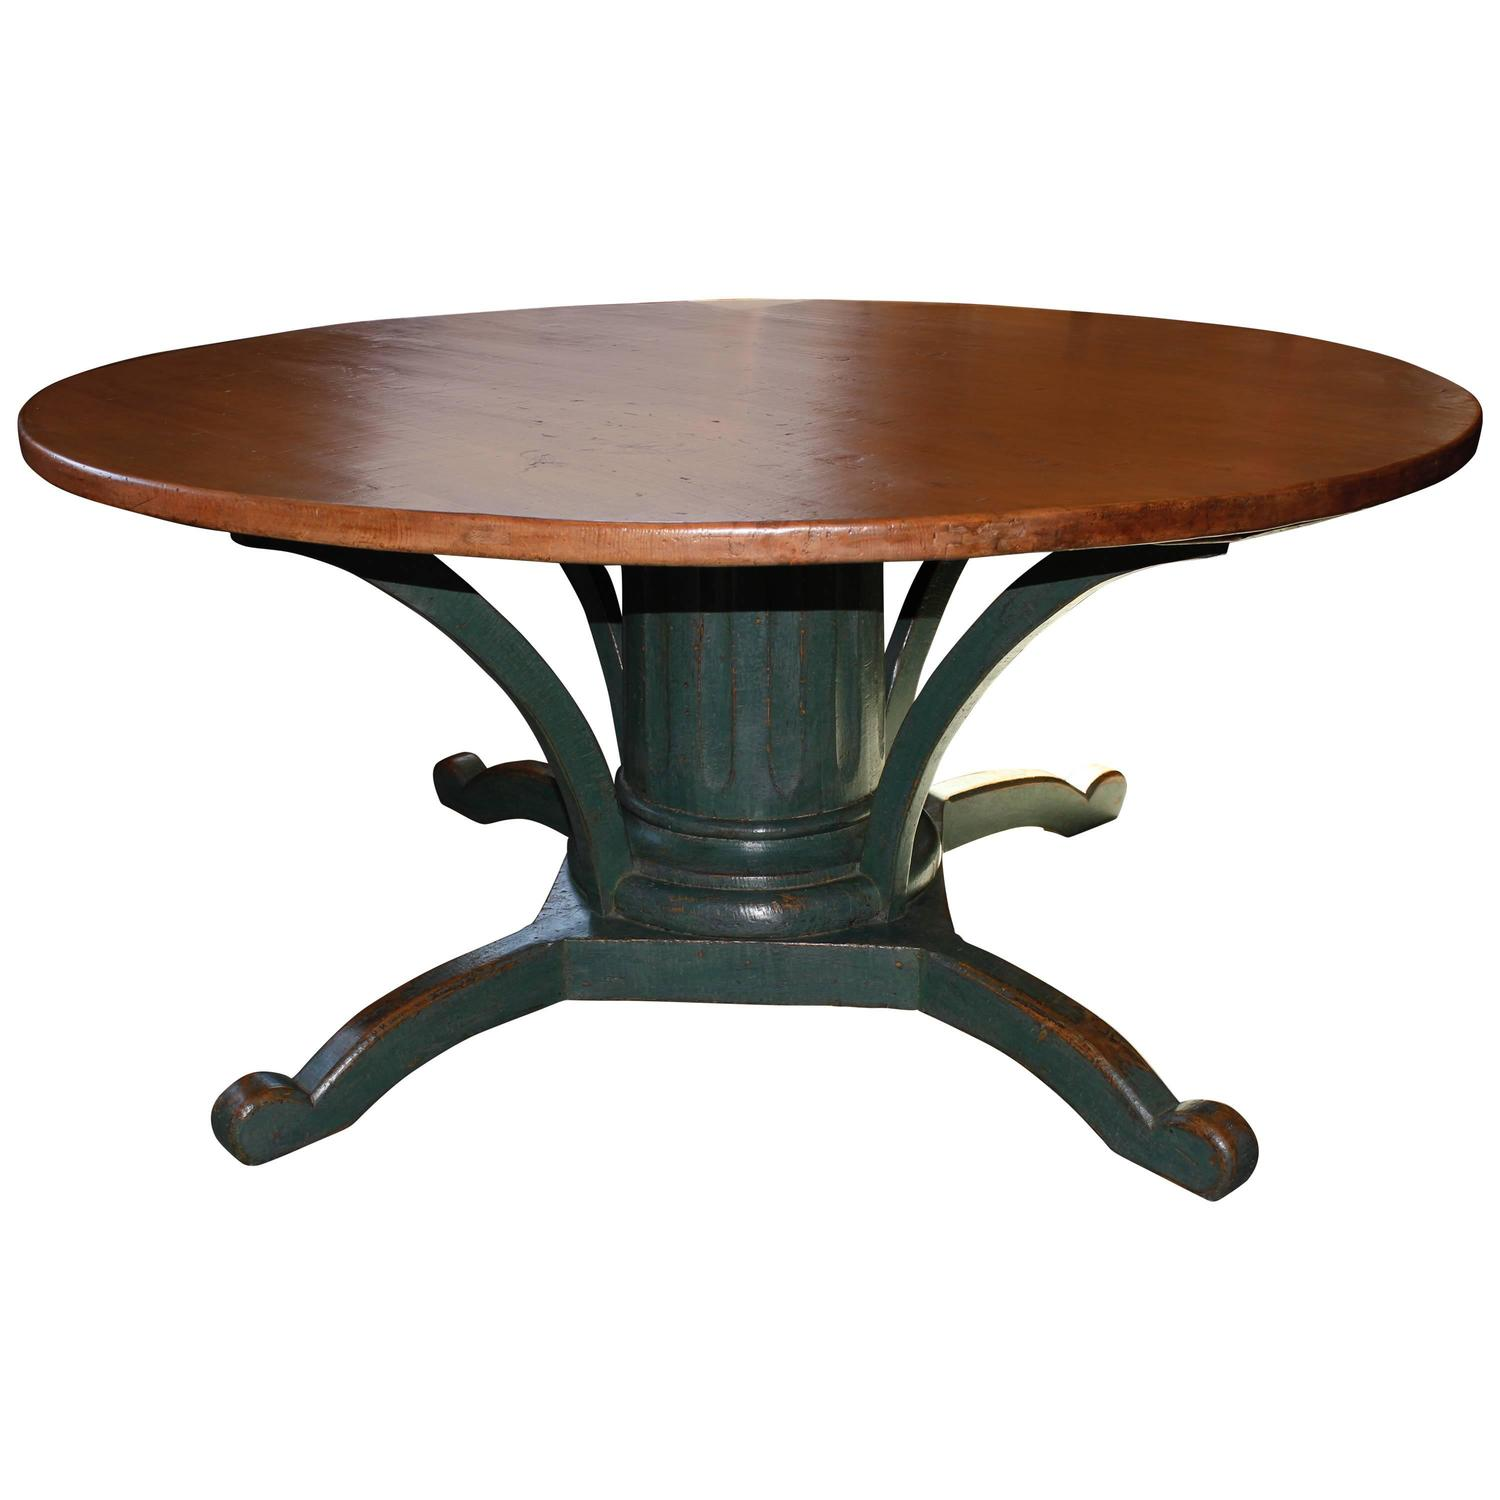 Round Dining Table Pedestal Base from Quebec at 1stdibs : 4119153z from www.1stdibs.com size 1500 x 1500 jpeg 78kB